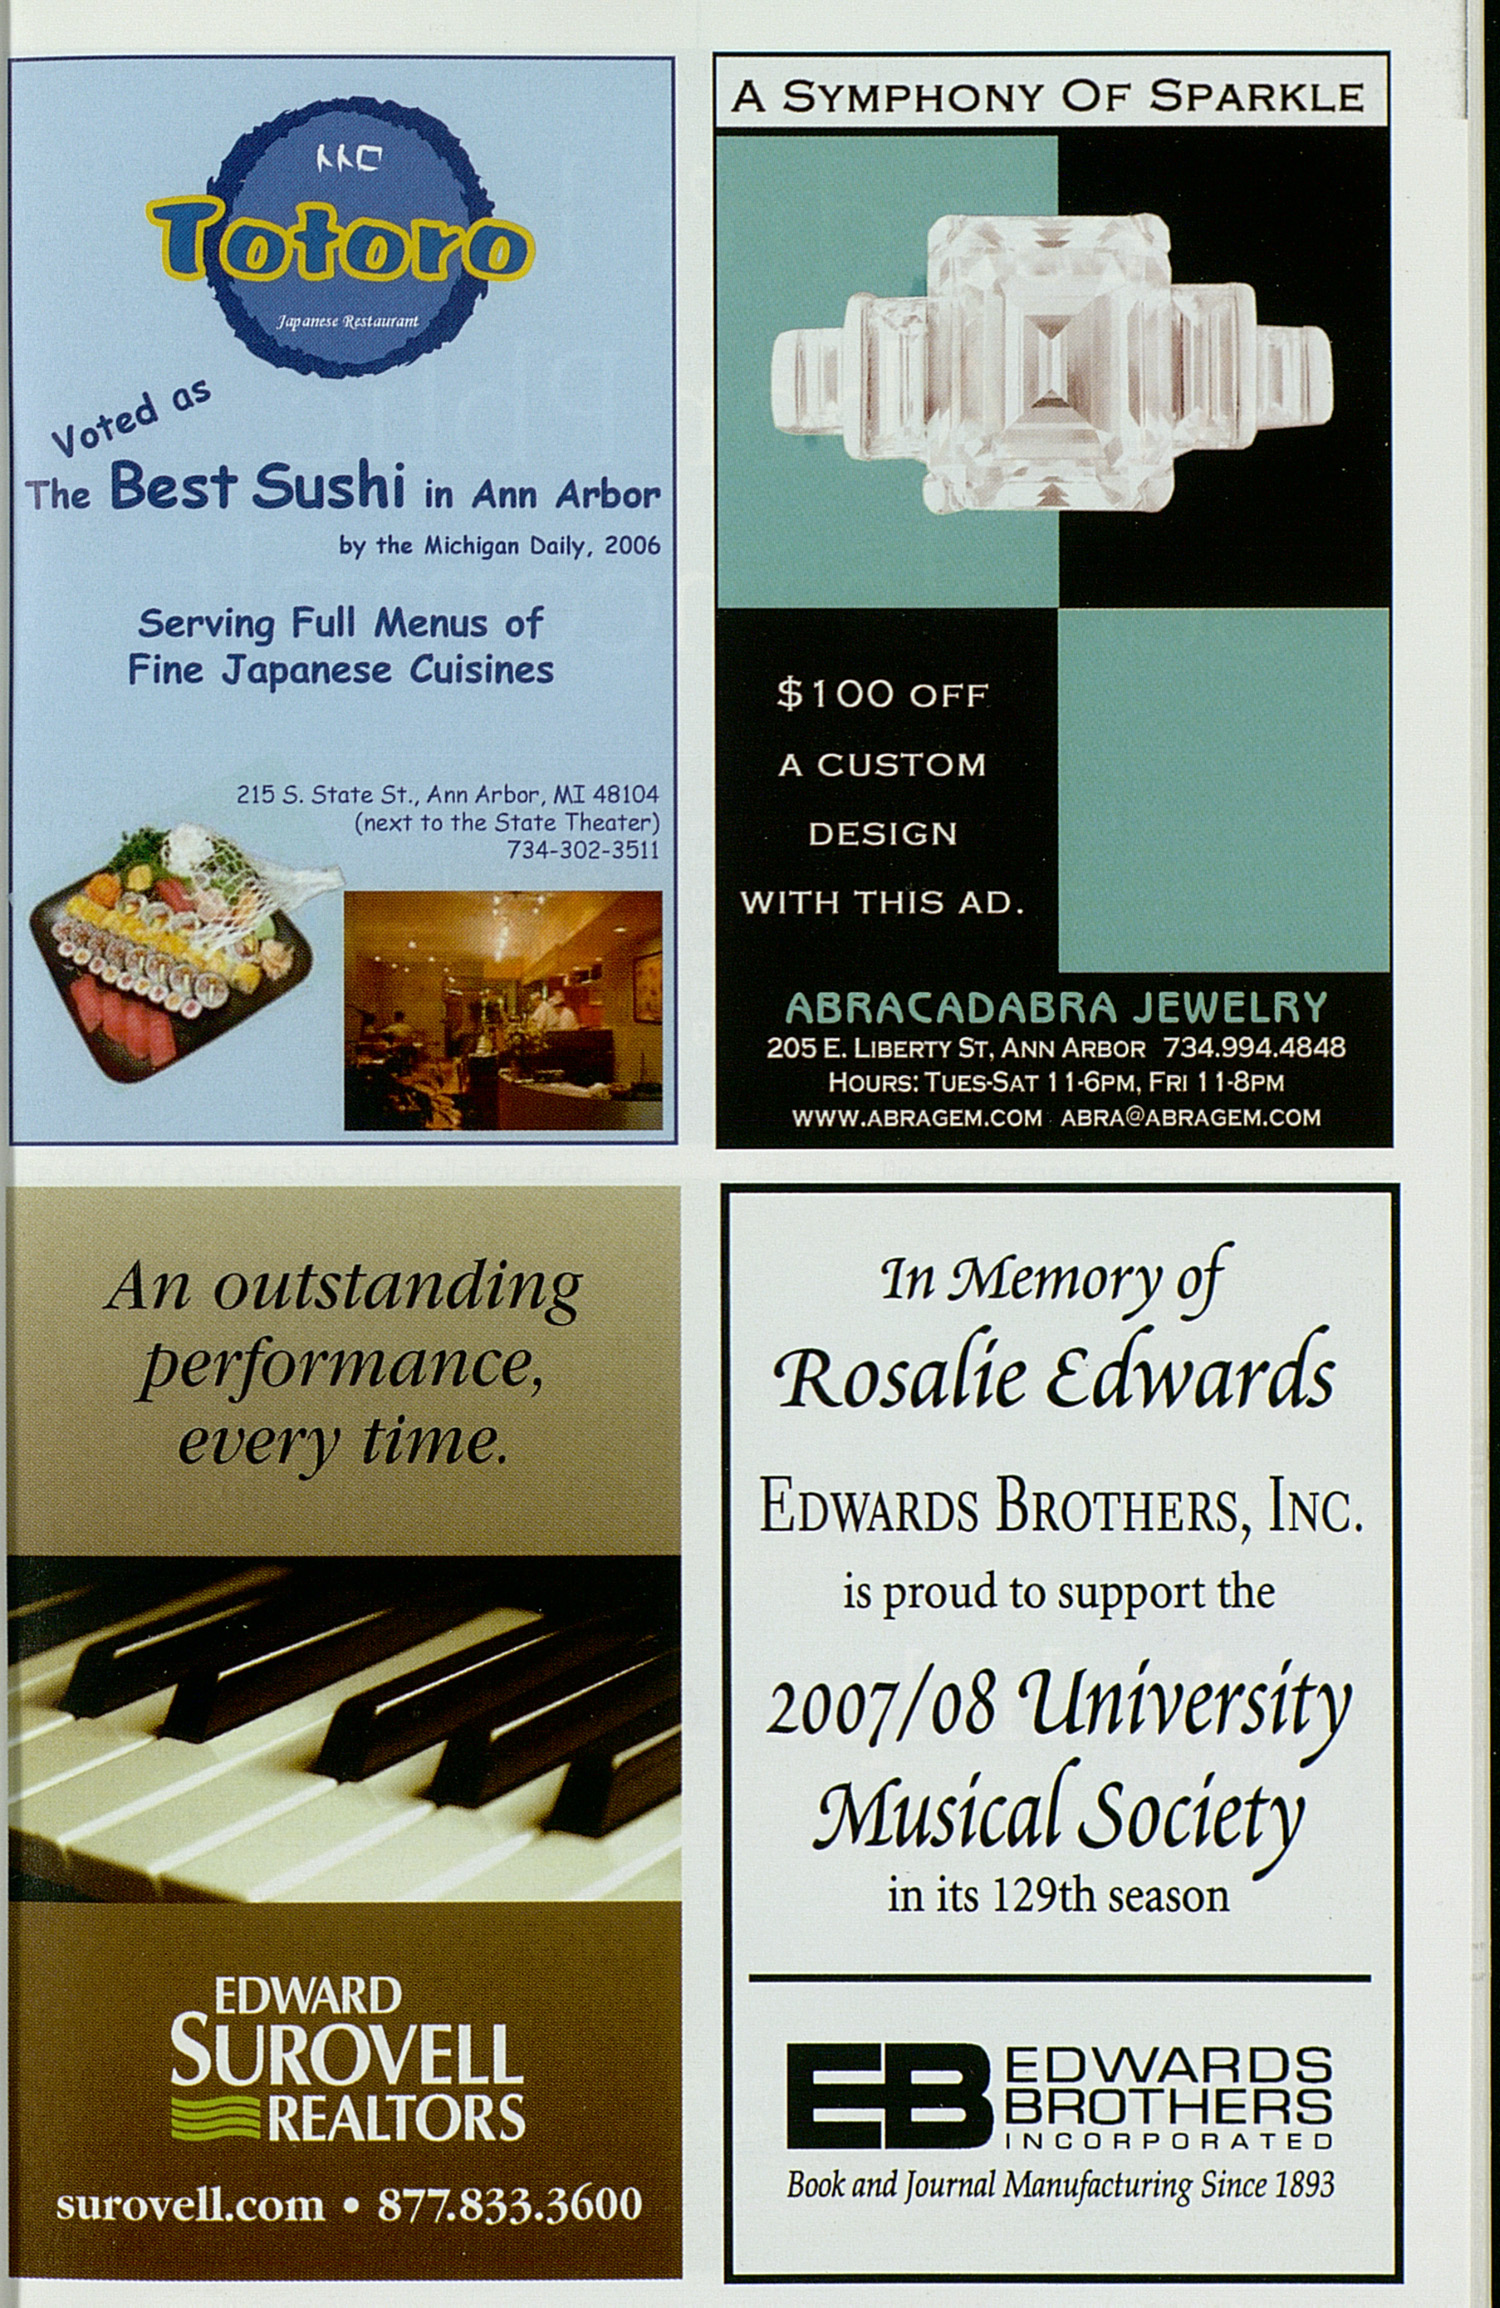 UMS Concert Program, Thursday Apr. 10 To 22: University Musical Society: Winter 2008 - Thursday Apr. 10 To 22 --  image